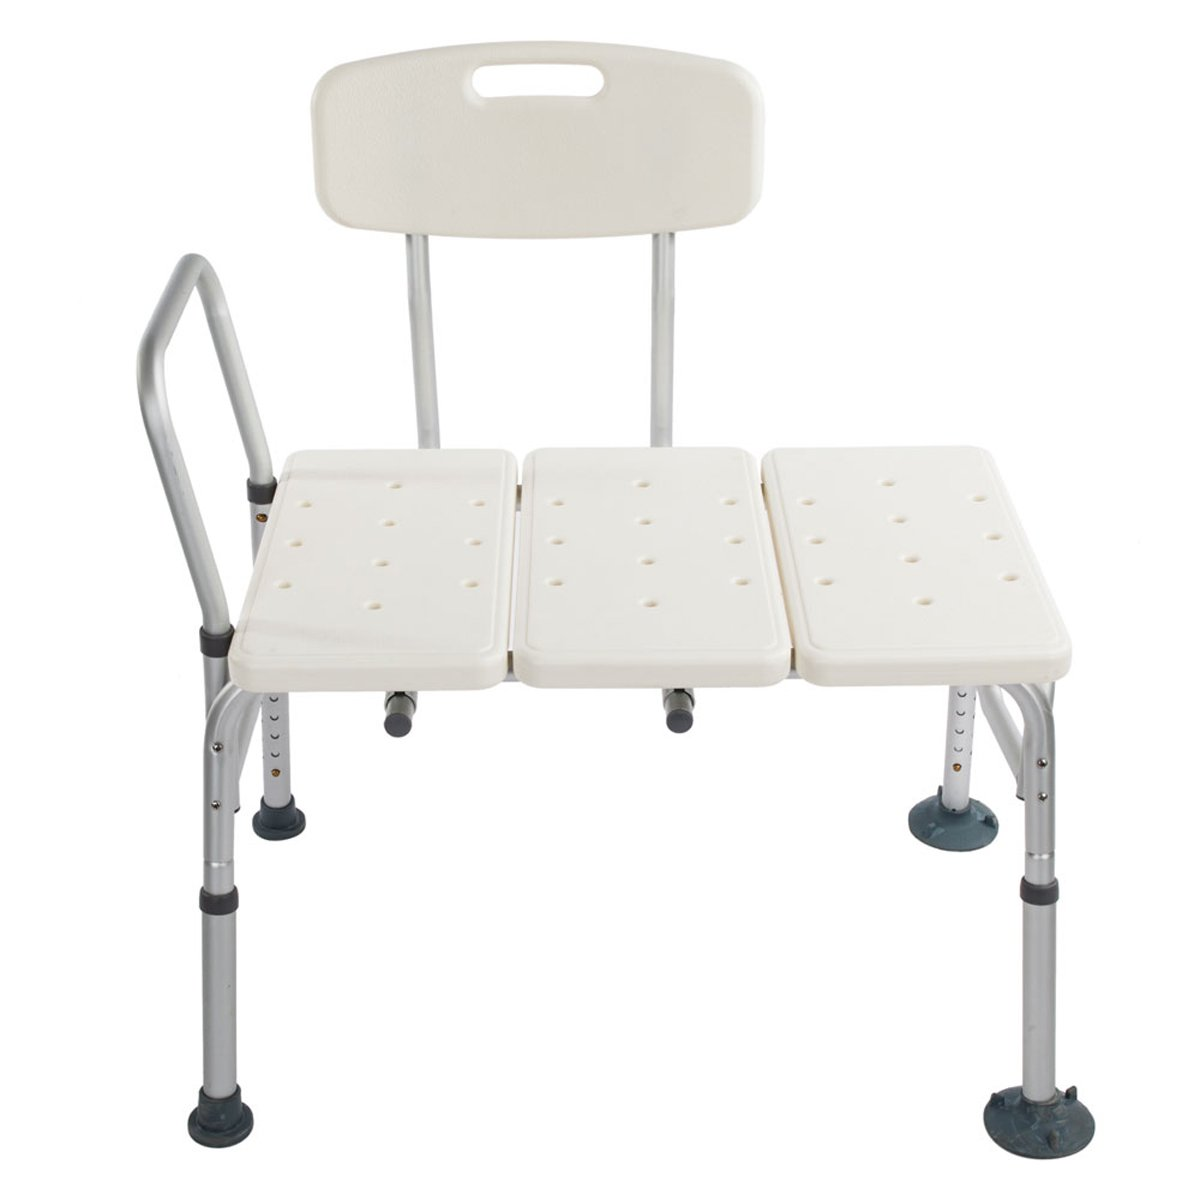 Anqi Tub Transfer 3 Blow Molding Bench Bath Chair Adjustable Handicap Shower Chair - Medical Bathroom Accessibility Aid Shower Tool Medical Tool Free Anti-Slip Bathtub Seat for Elderly, Disabled, Hand